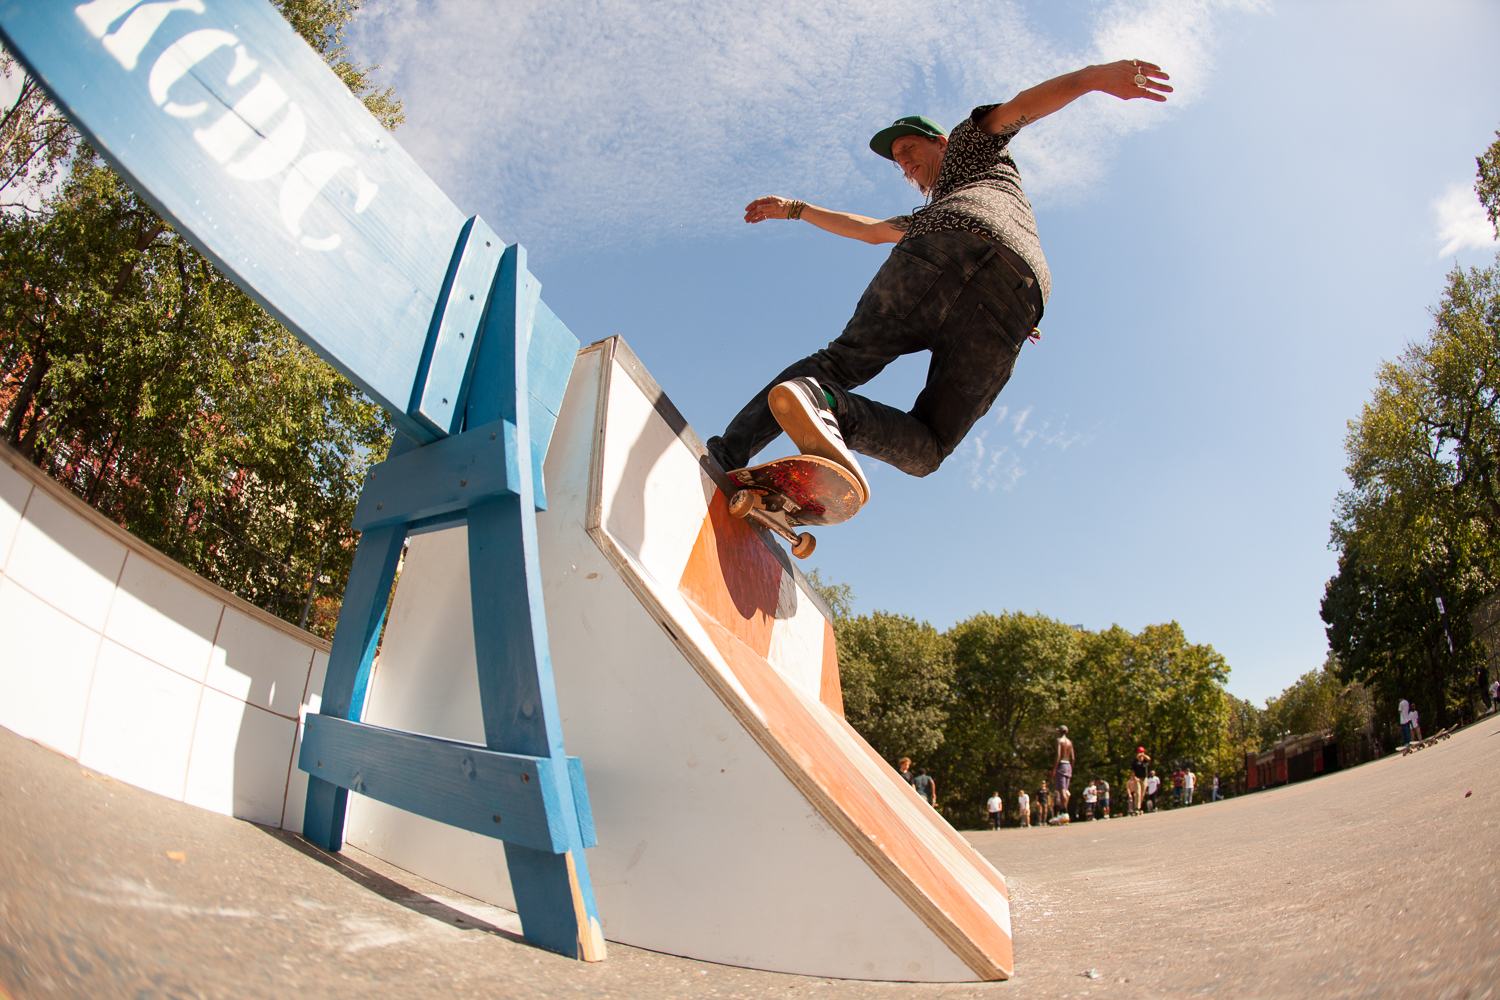 Josh Zickert, frontside rock on KCDC's obstacle.